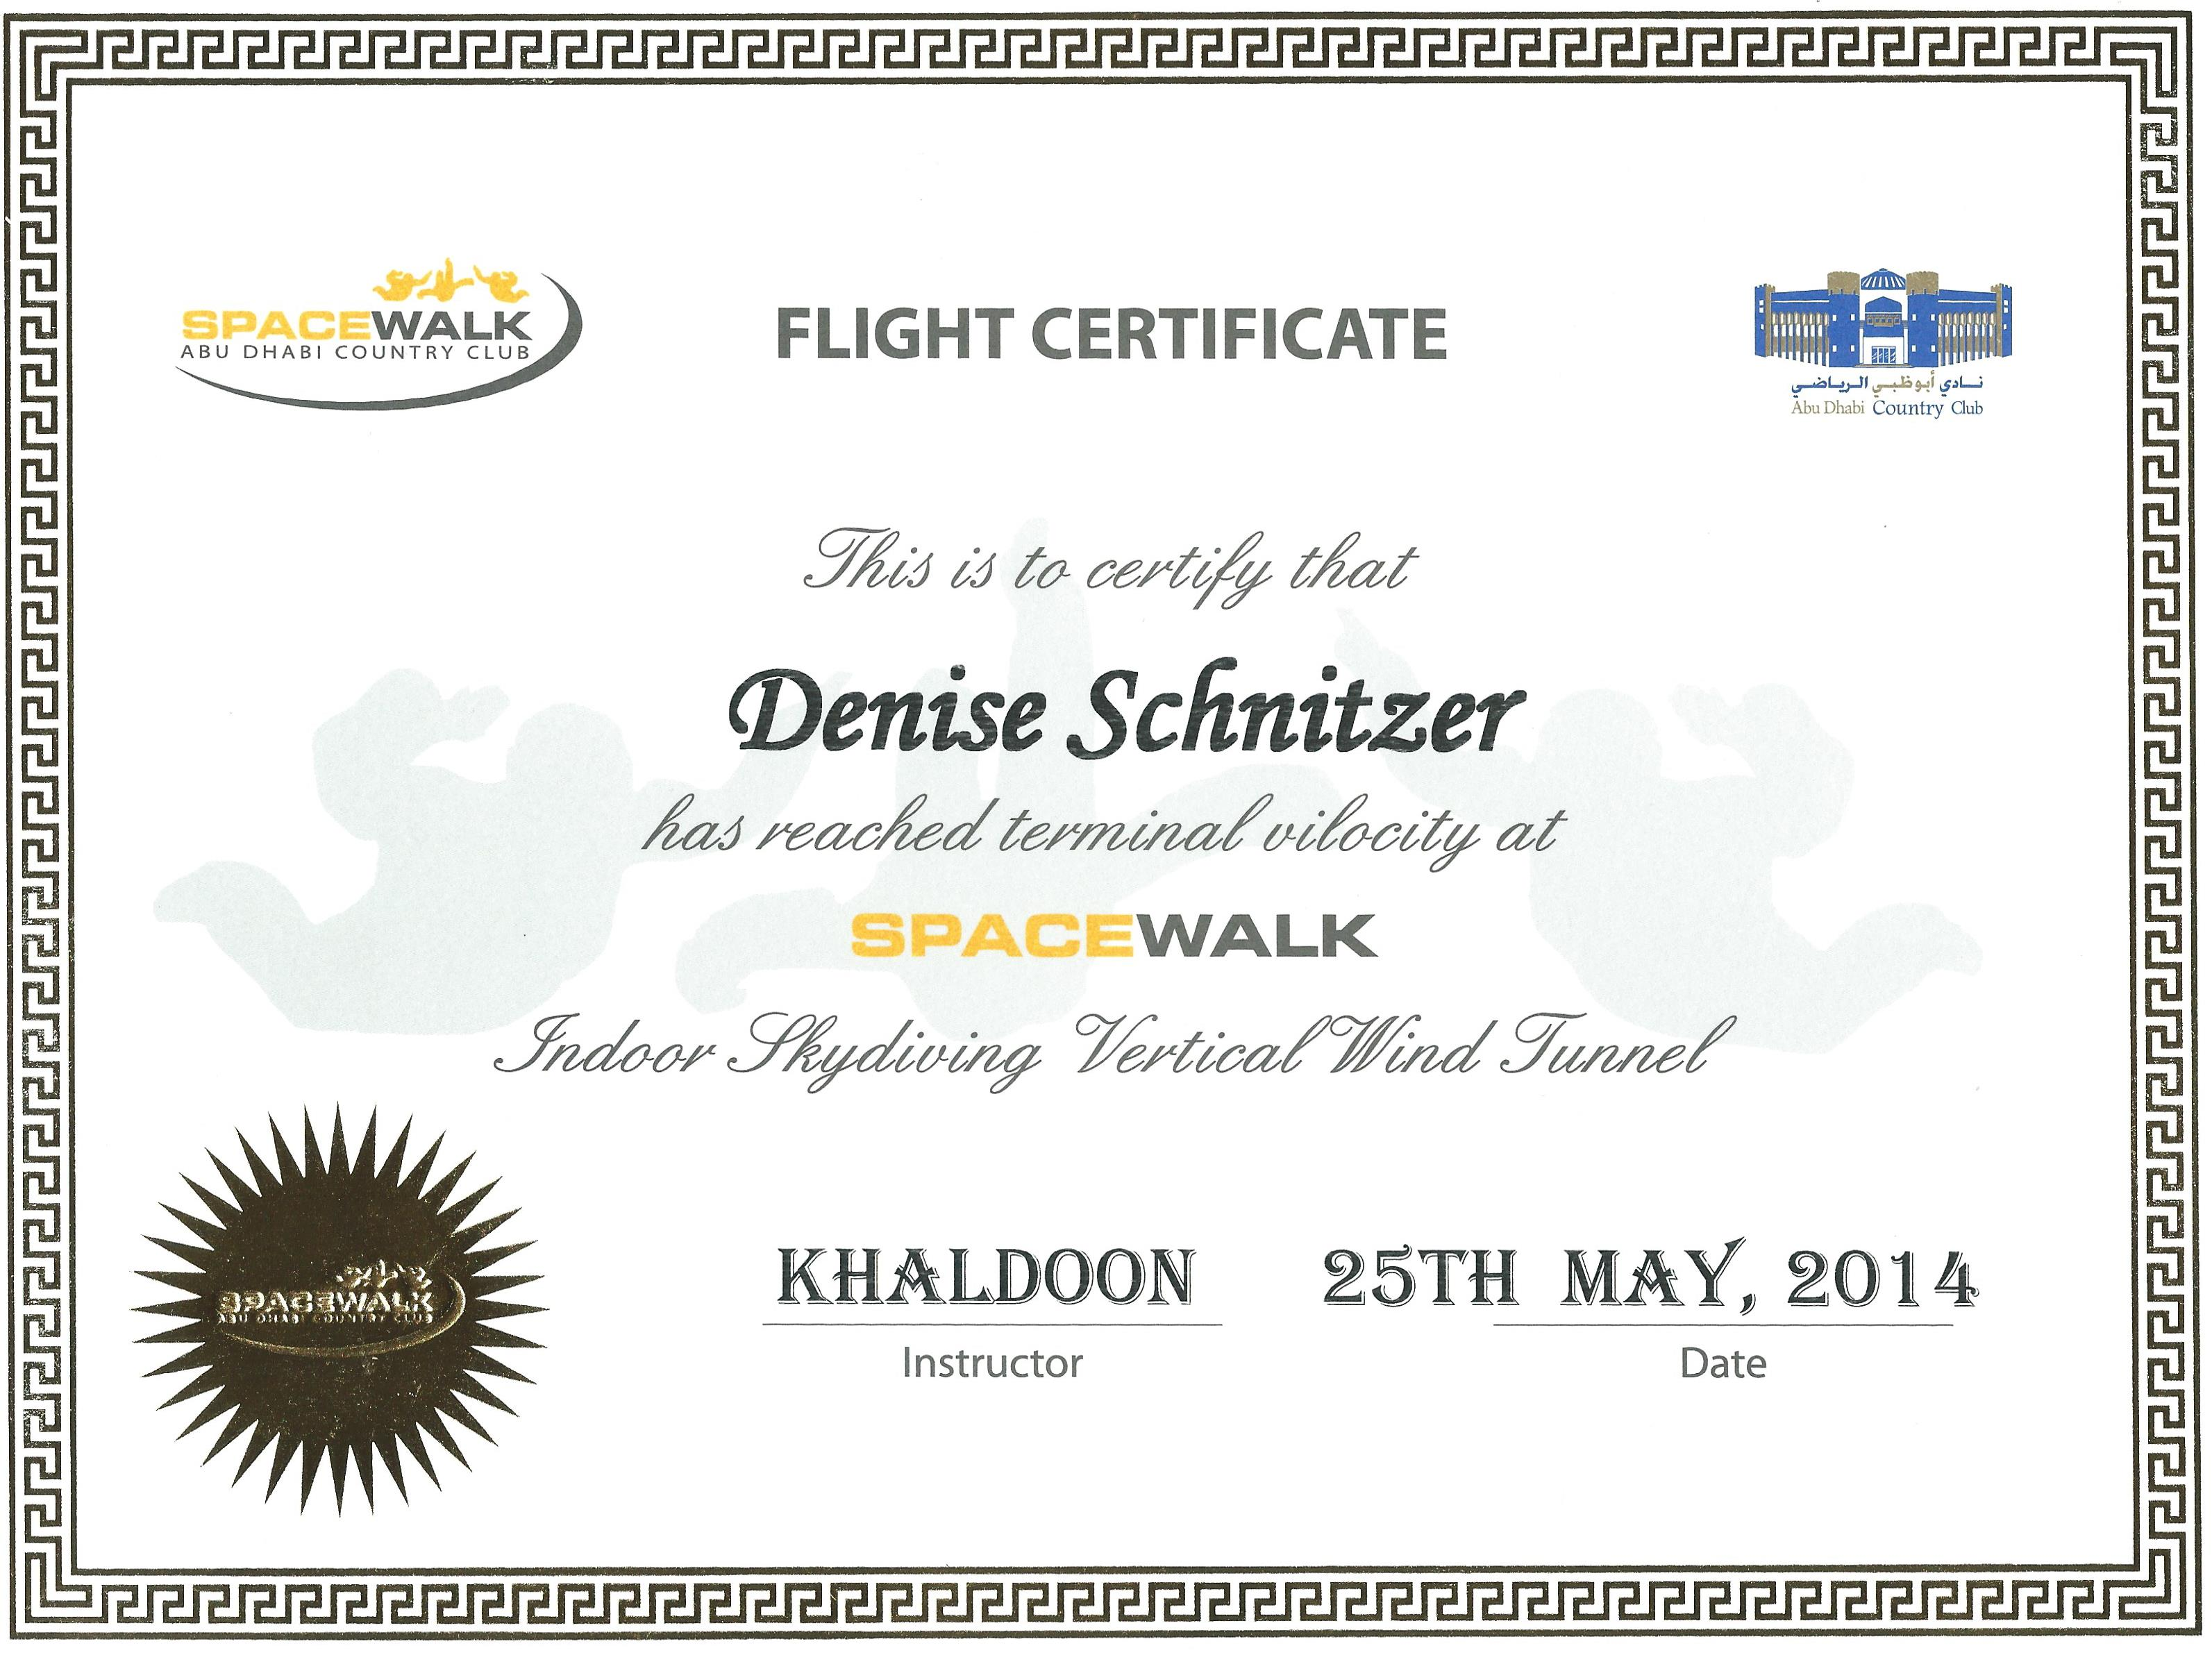 My certificate, suitable for framing.